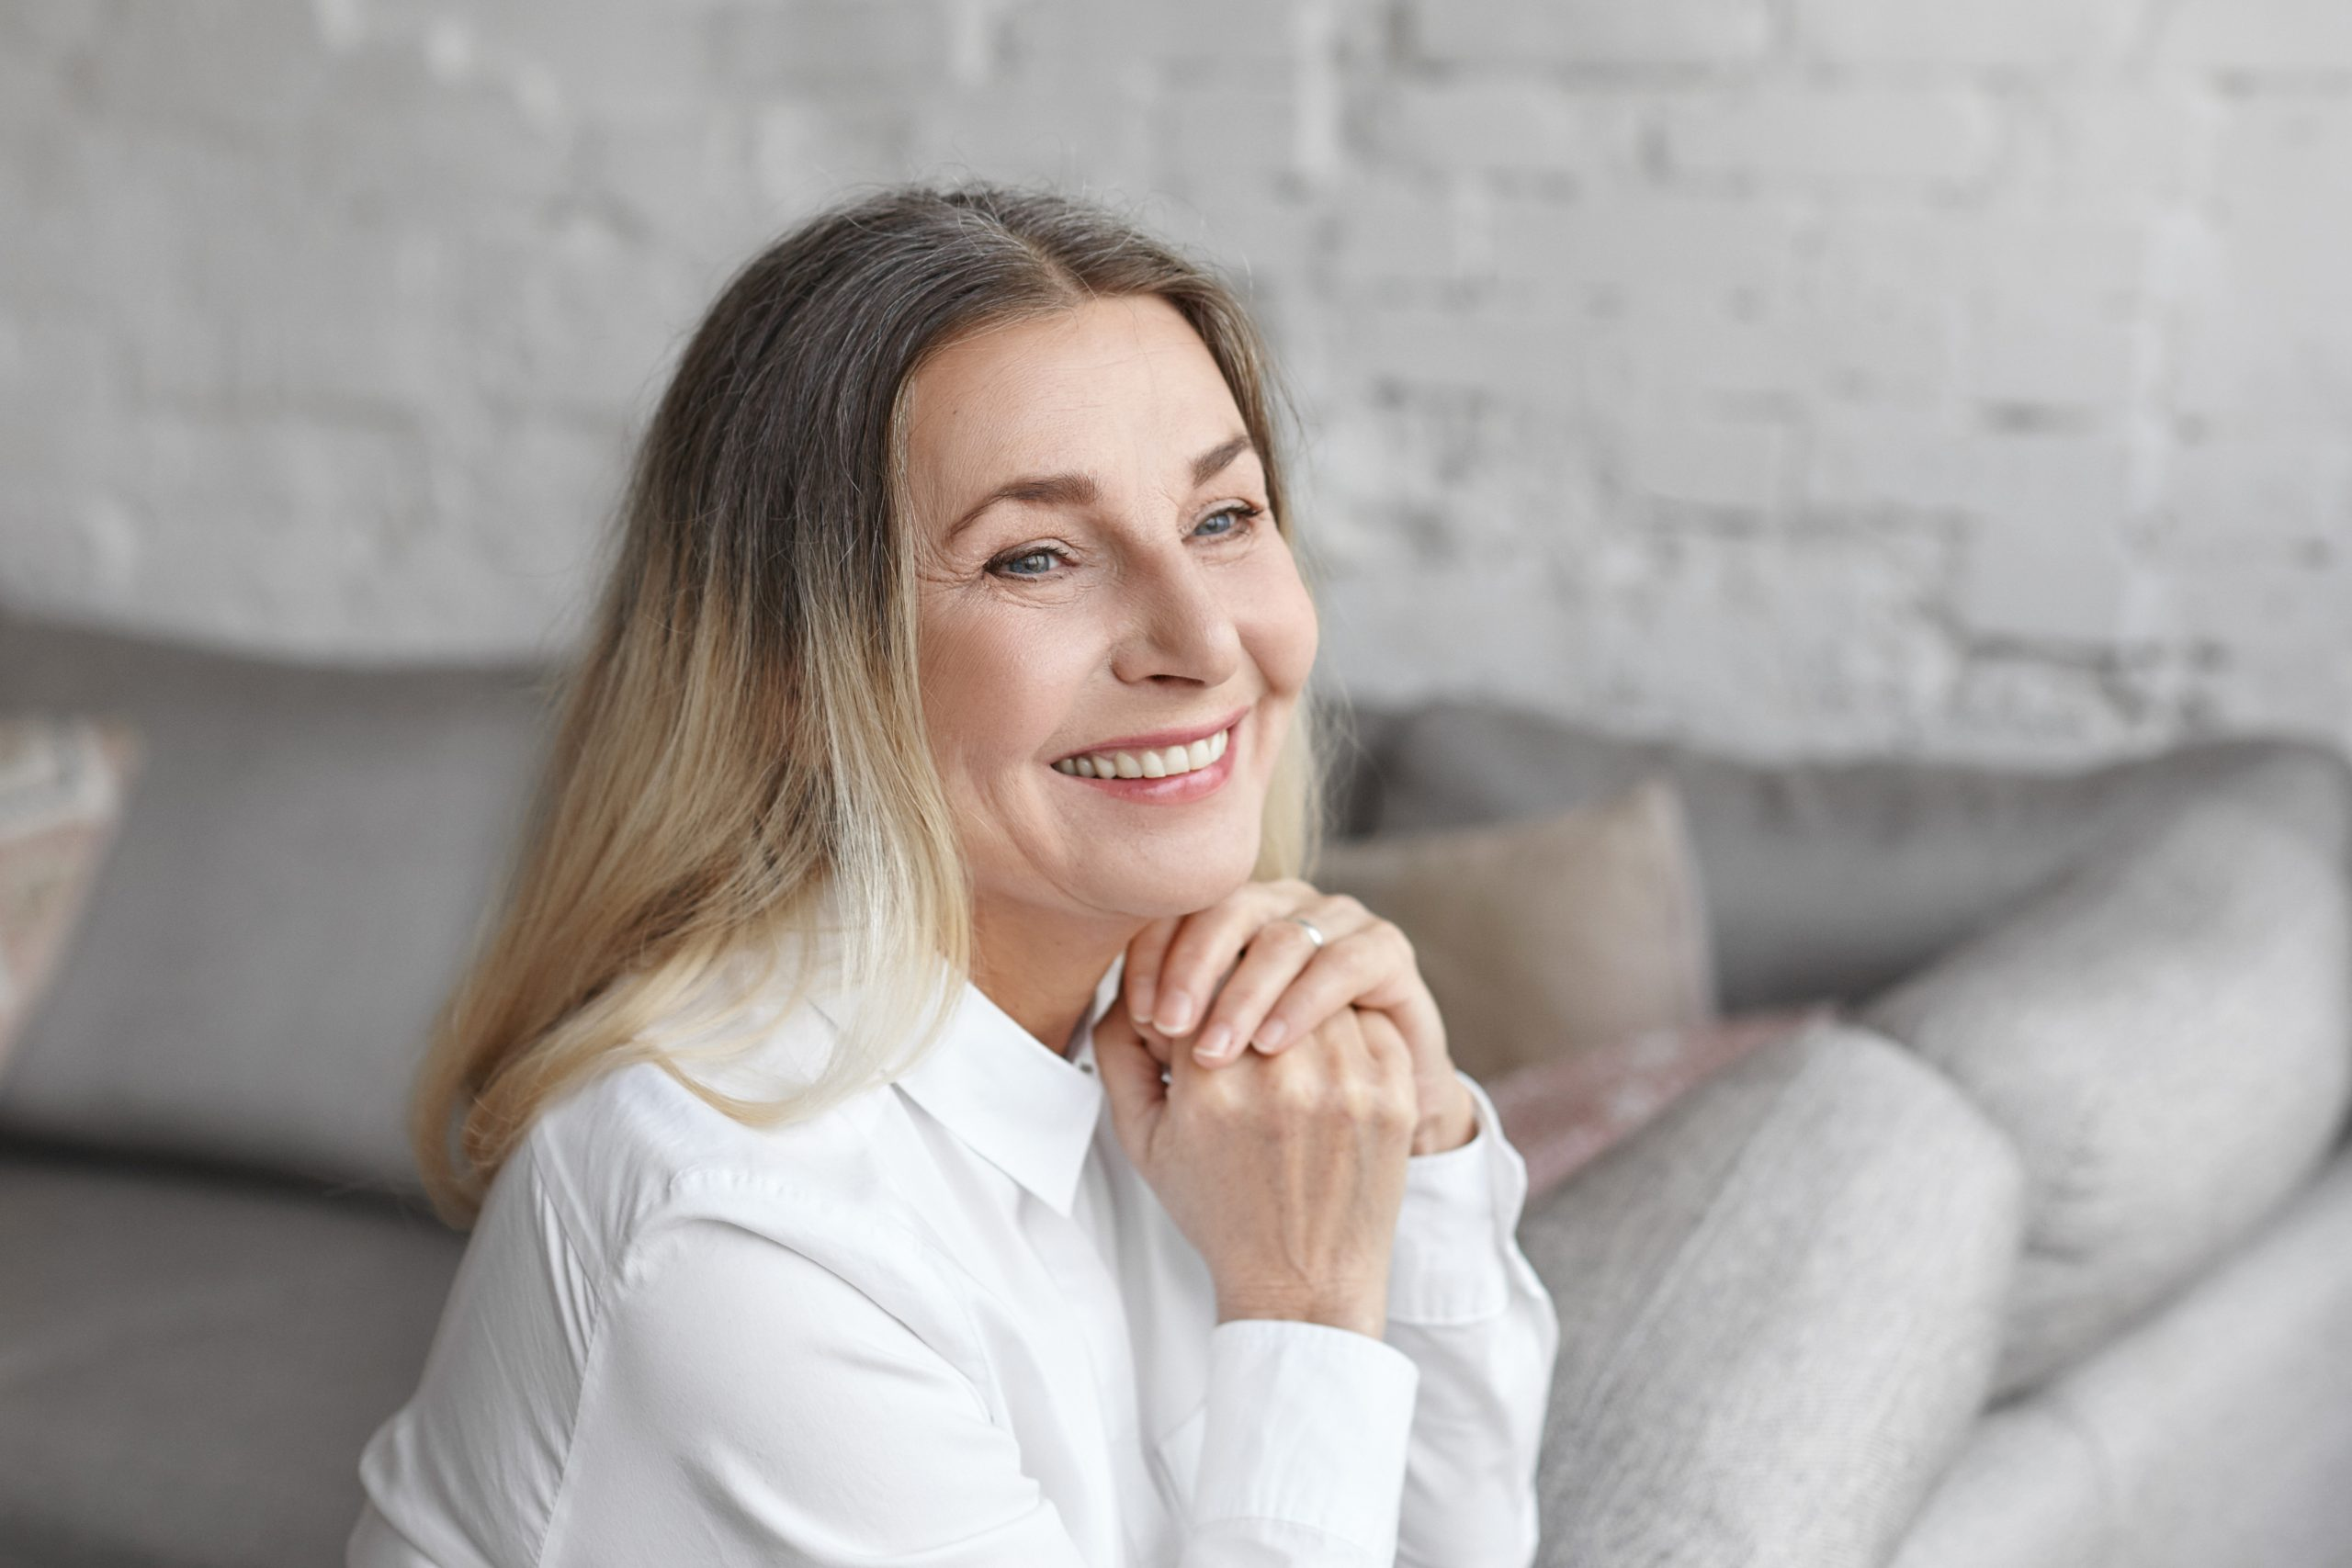 How to Get the Best Results from Your Facelift